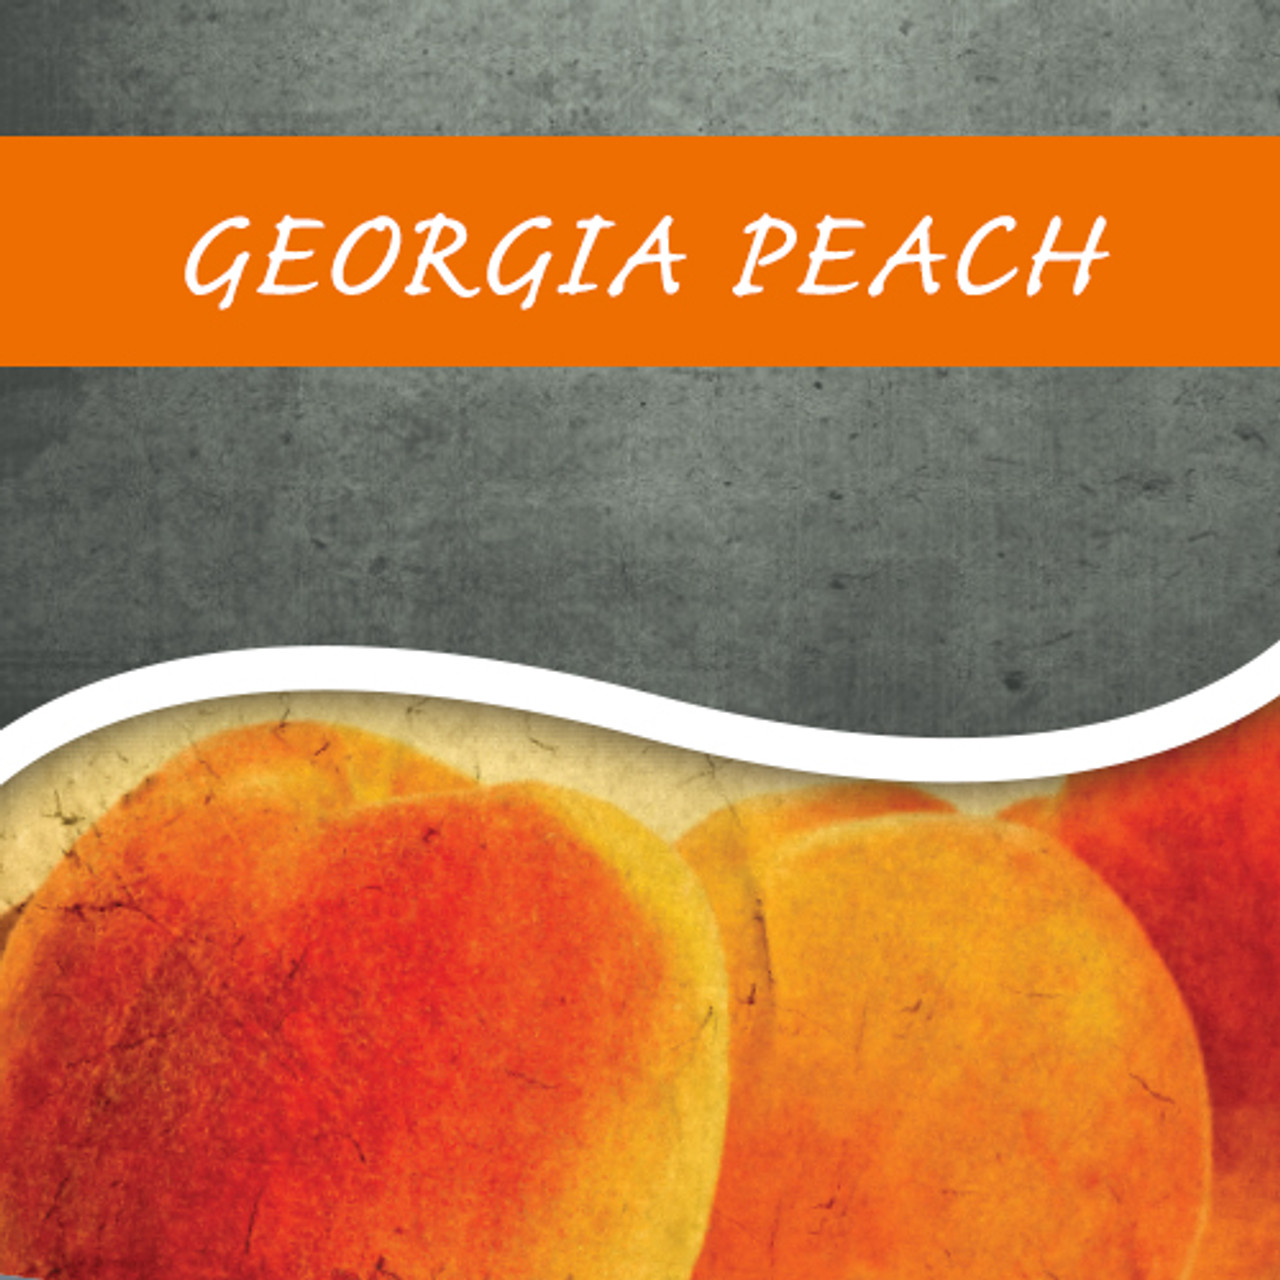 Georgia Peach Flavored Coffee